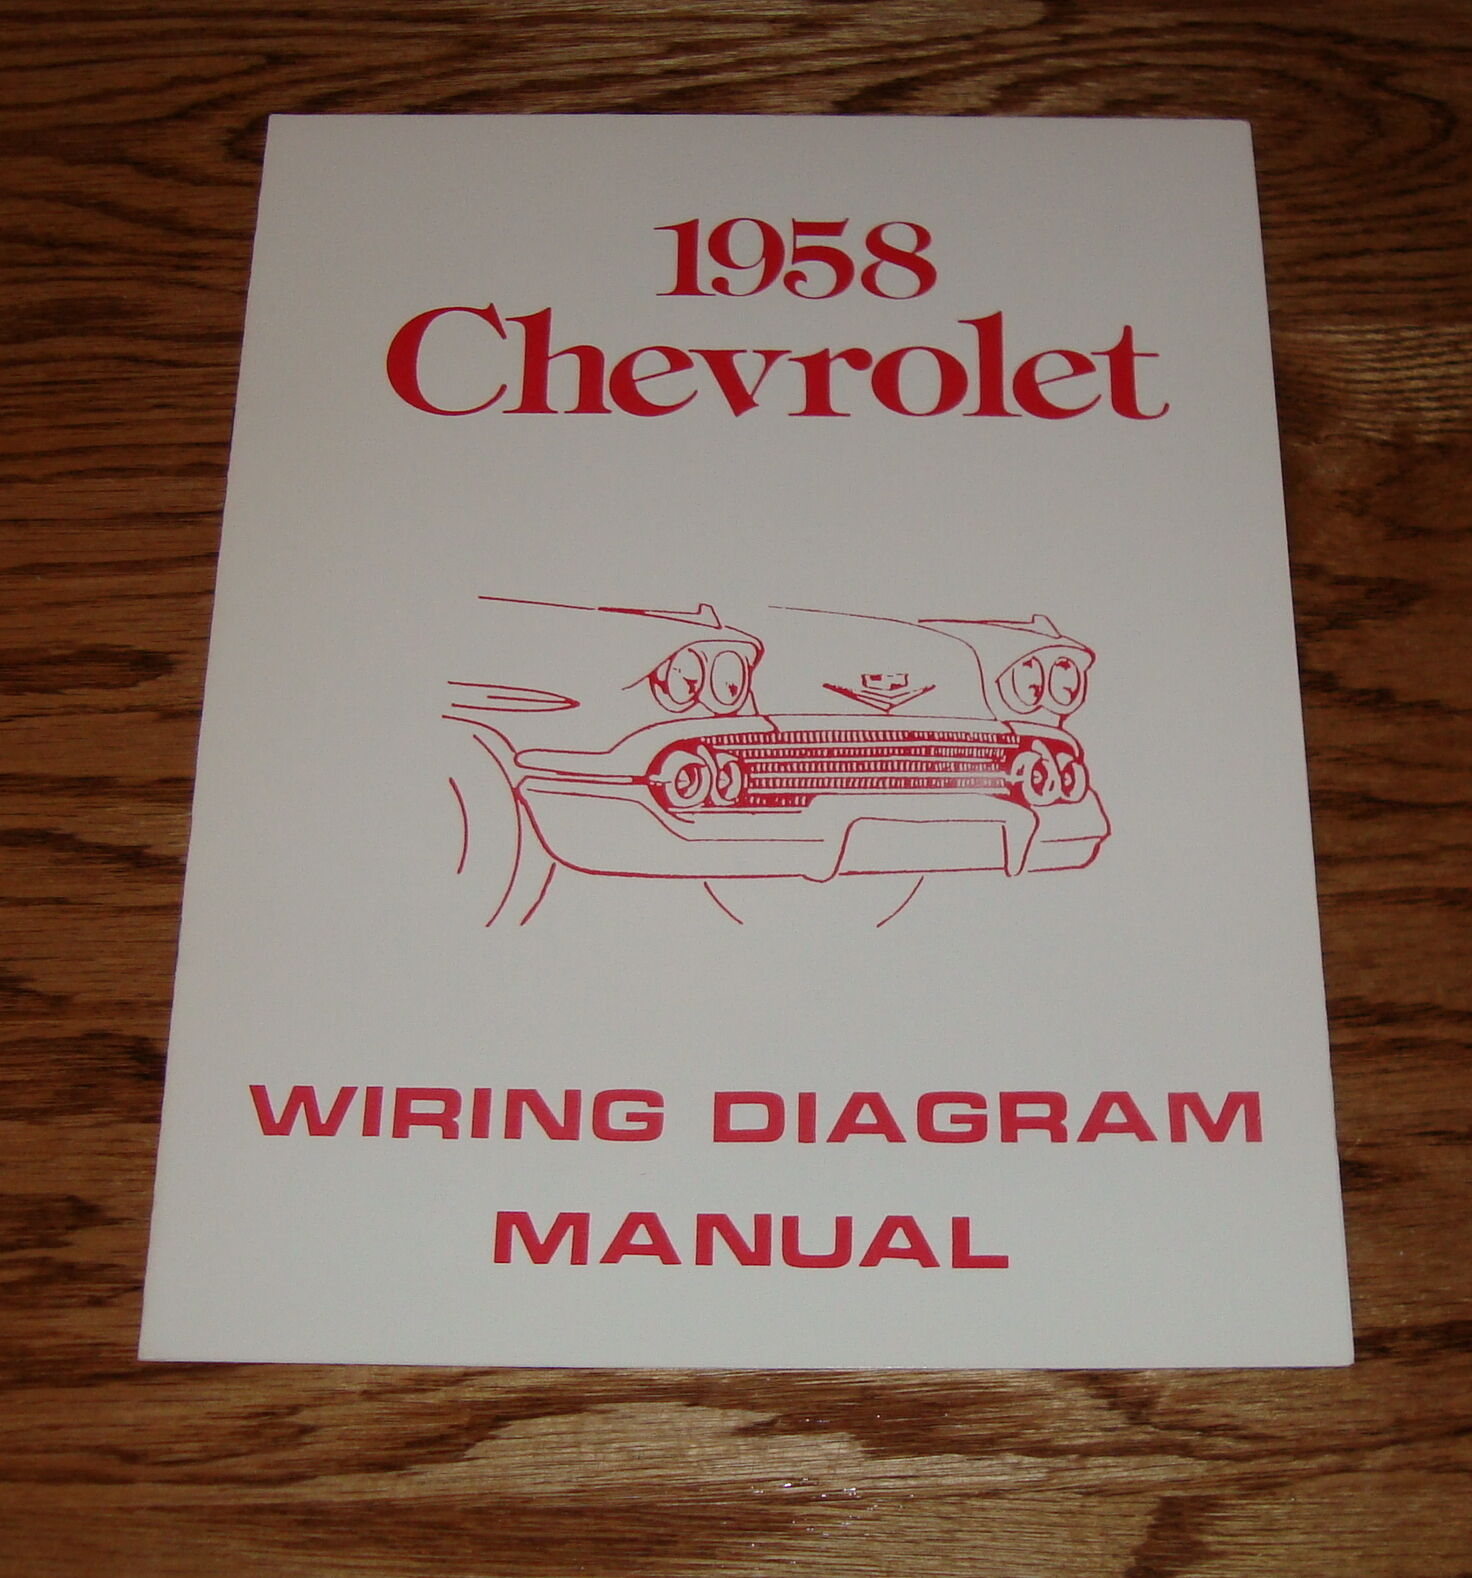 1958 Chevrolet Wiring Diagram Manual 58 Chevy